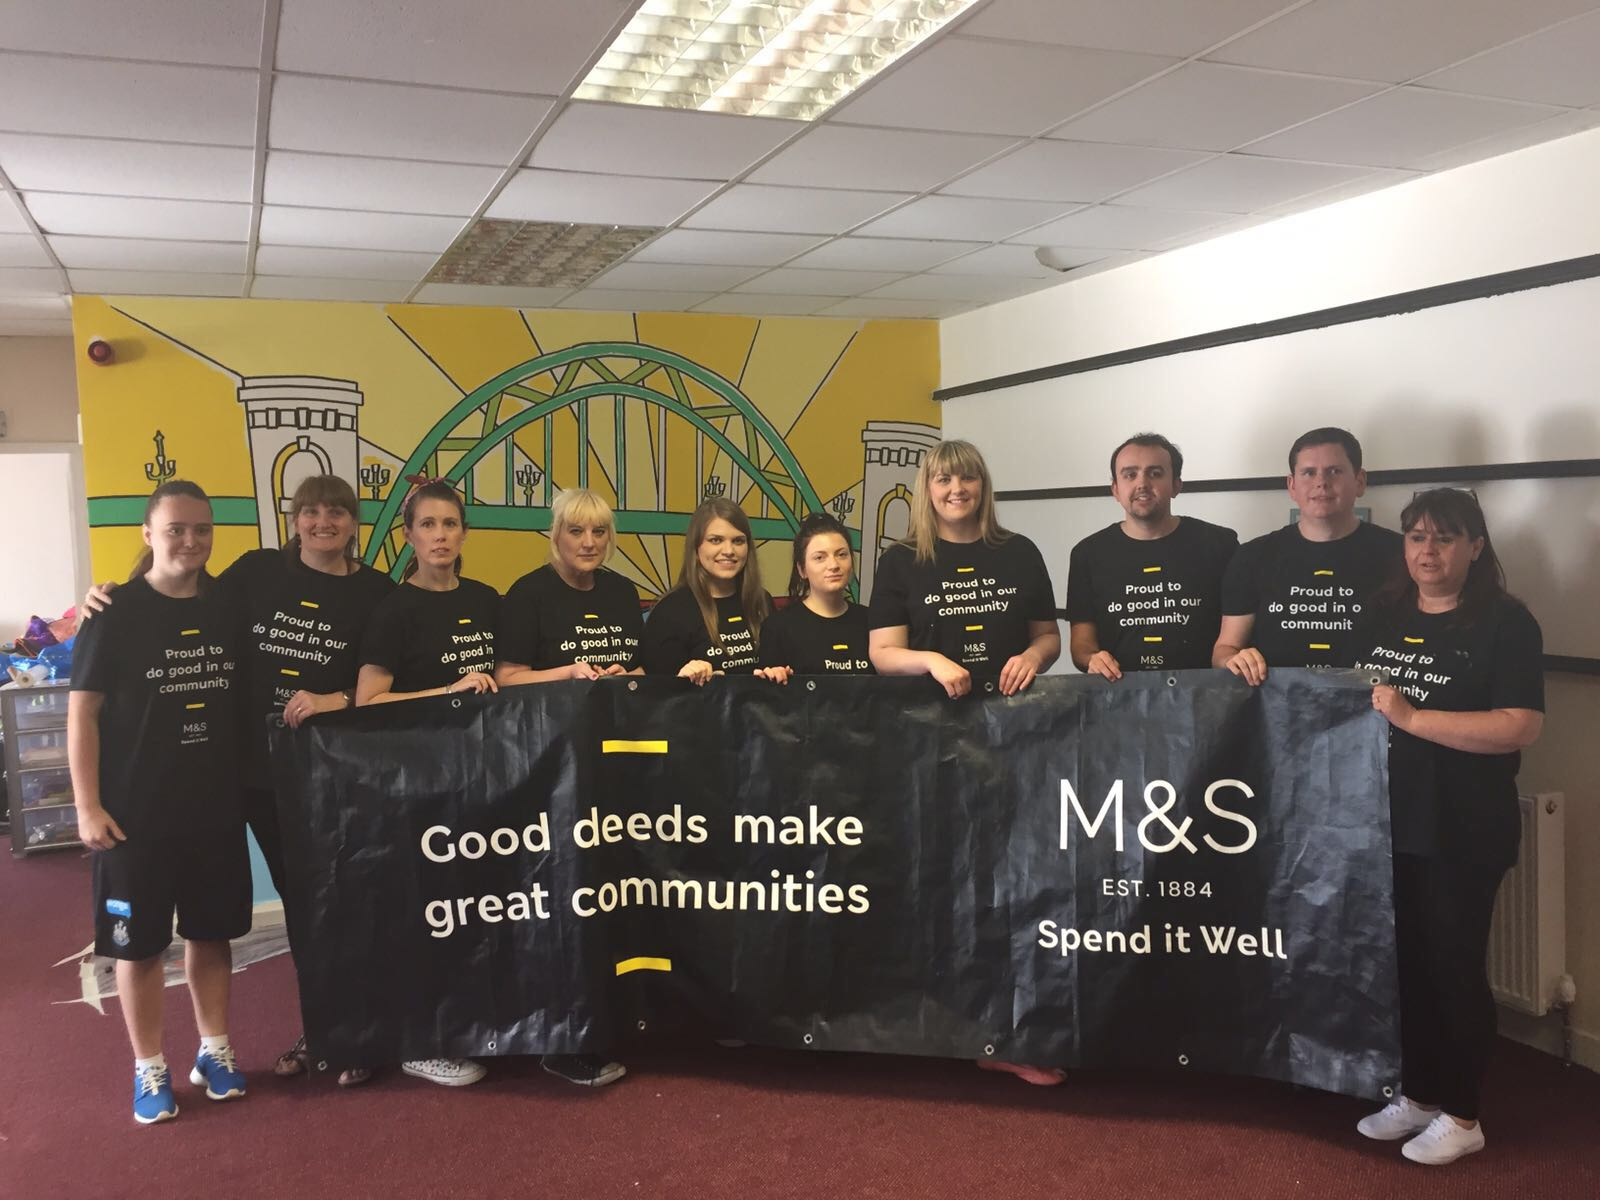 Not Just a Makeover: M&S Partners with the Food Bank